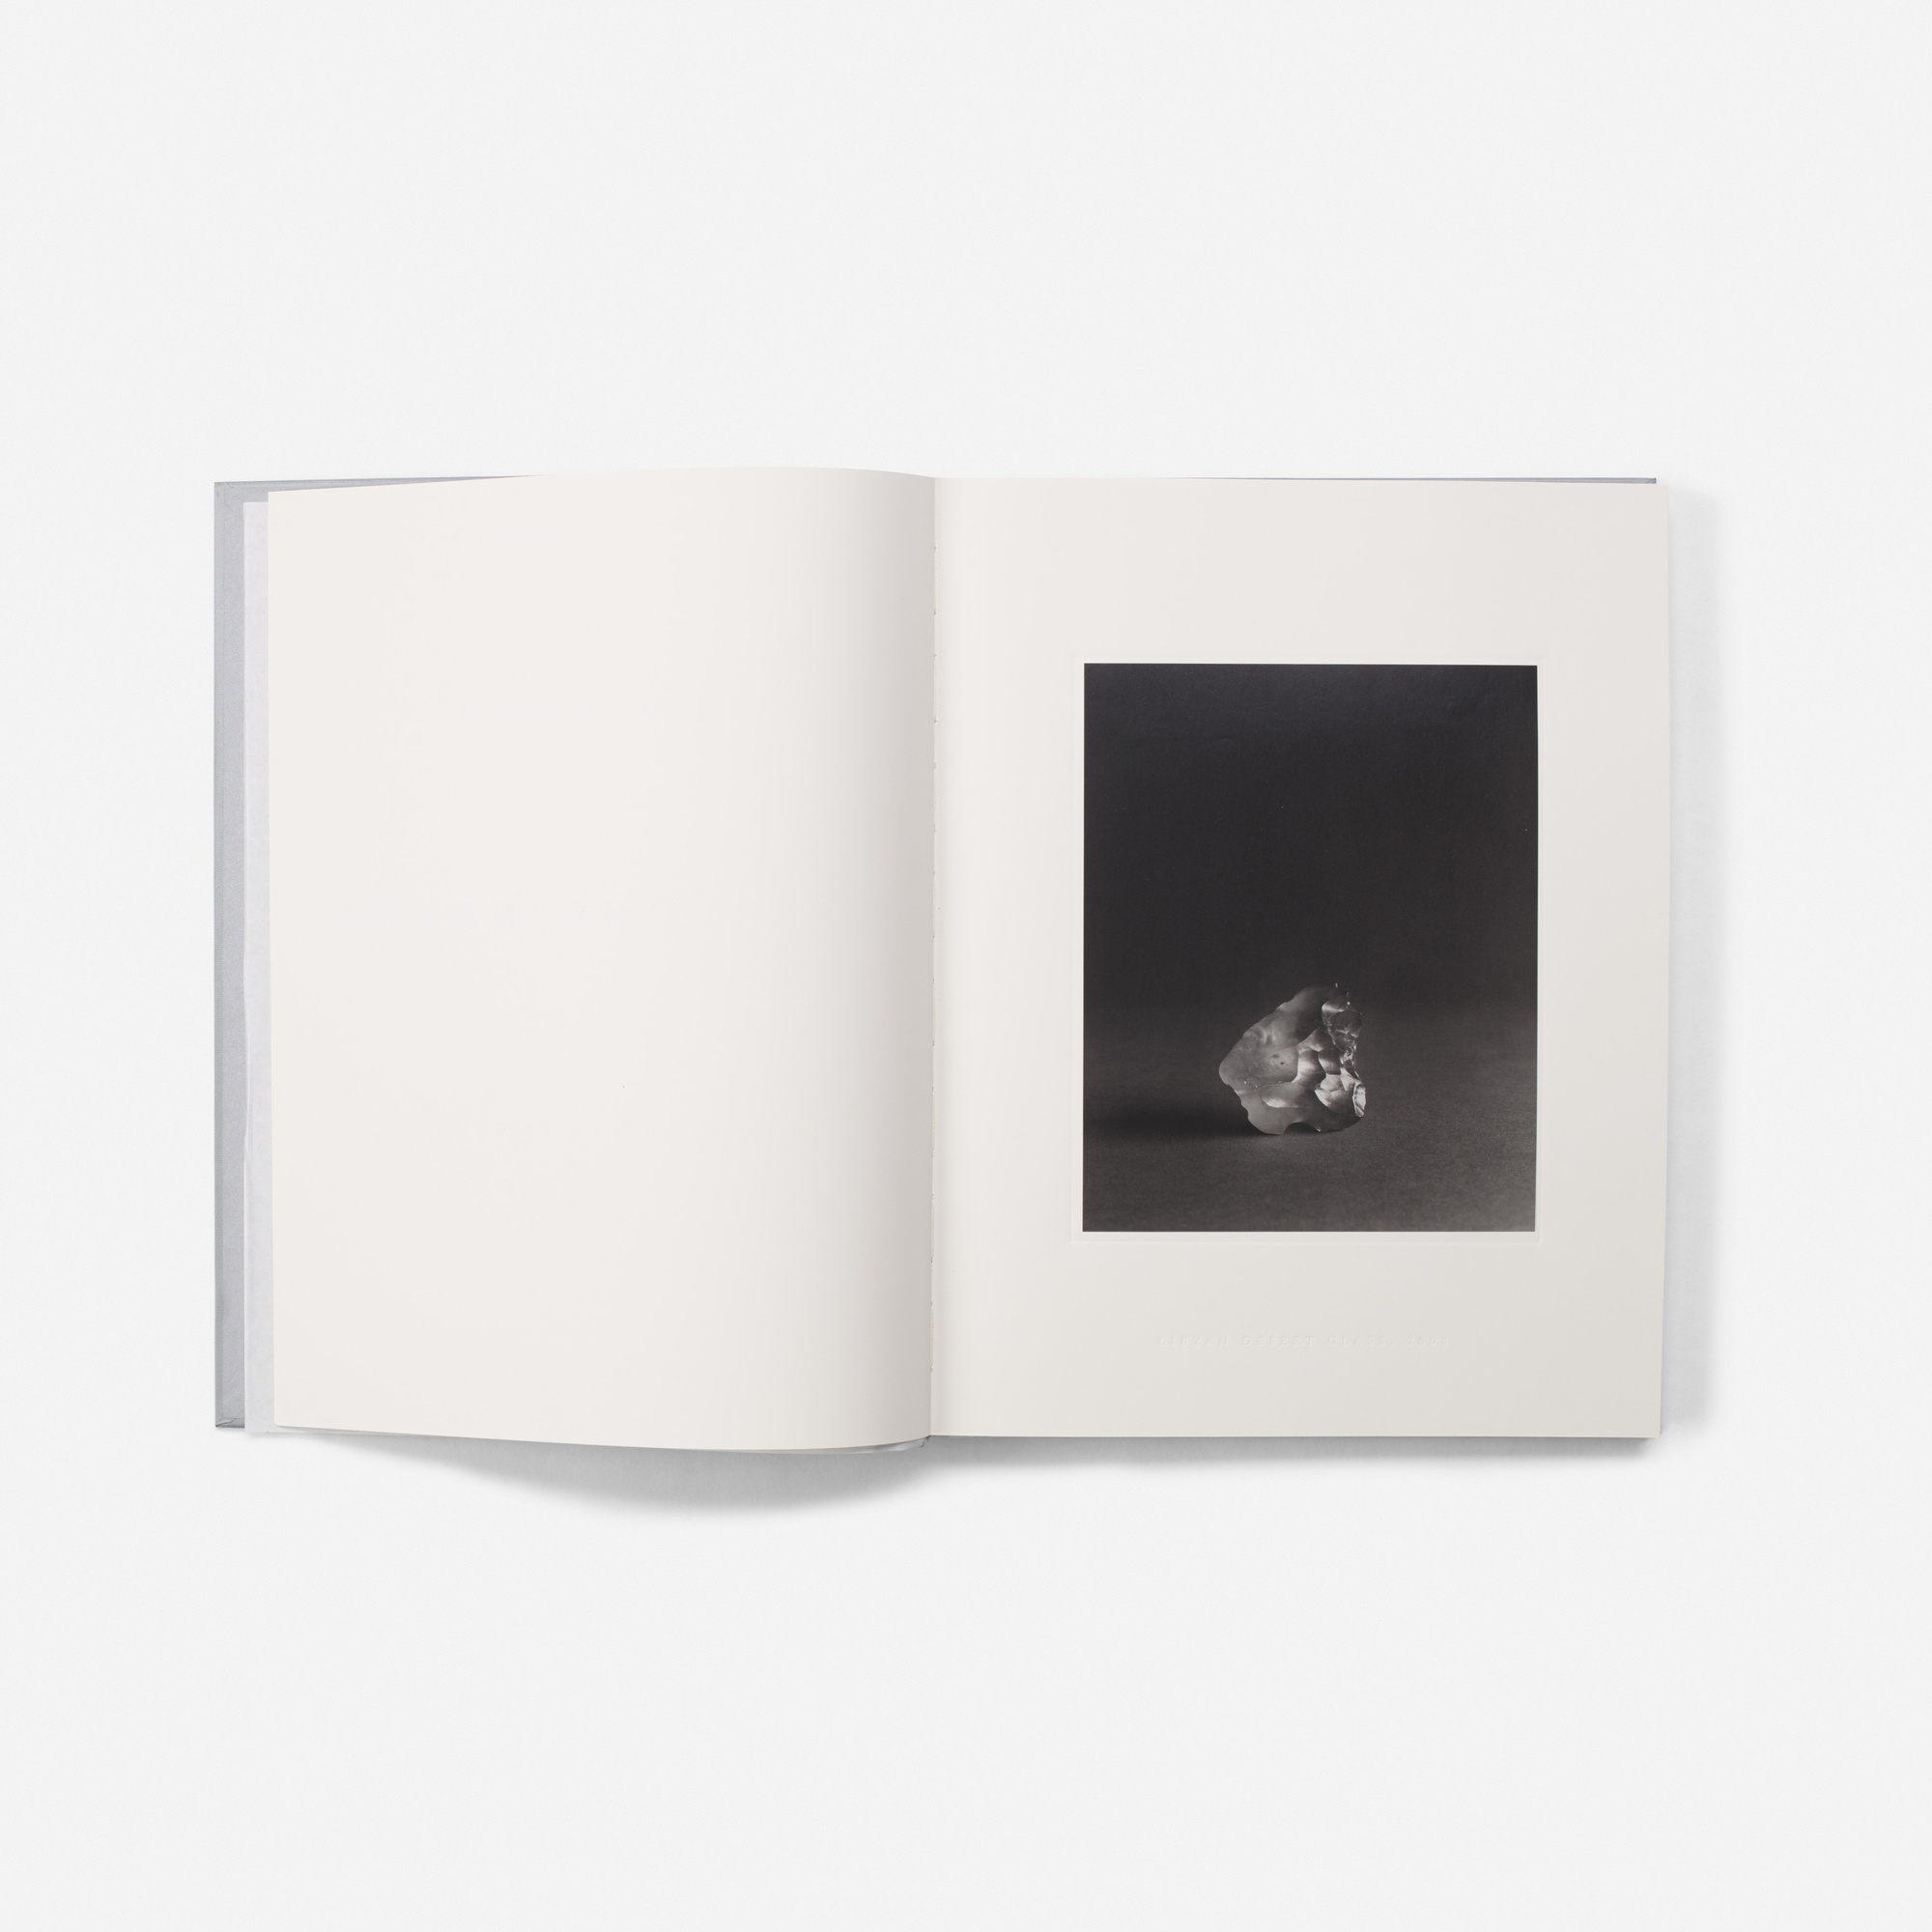 230: Hiroshi Sugimoto / The Long Never and Lightning Fields 304 (10 of 10)